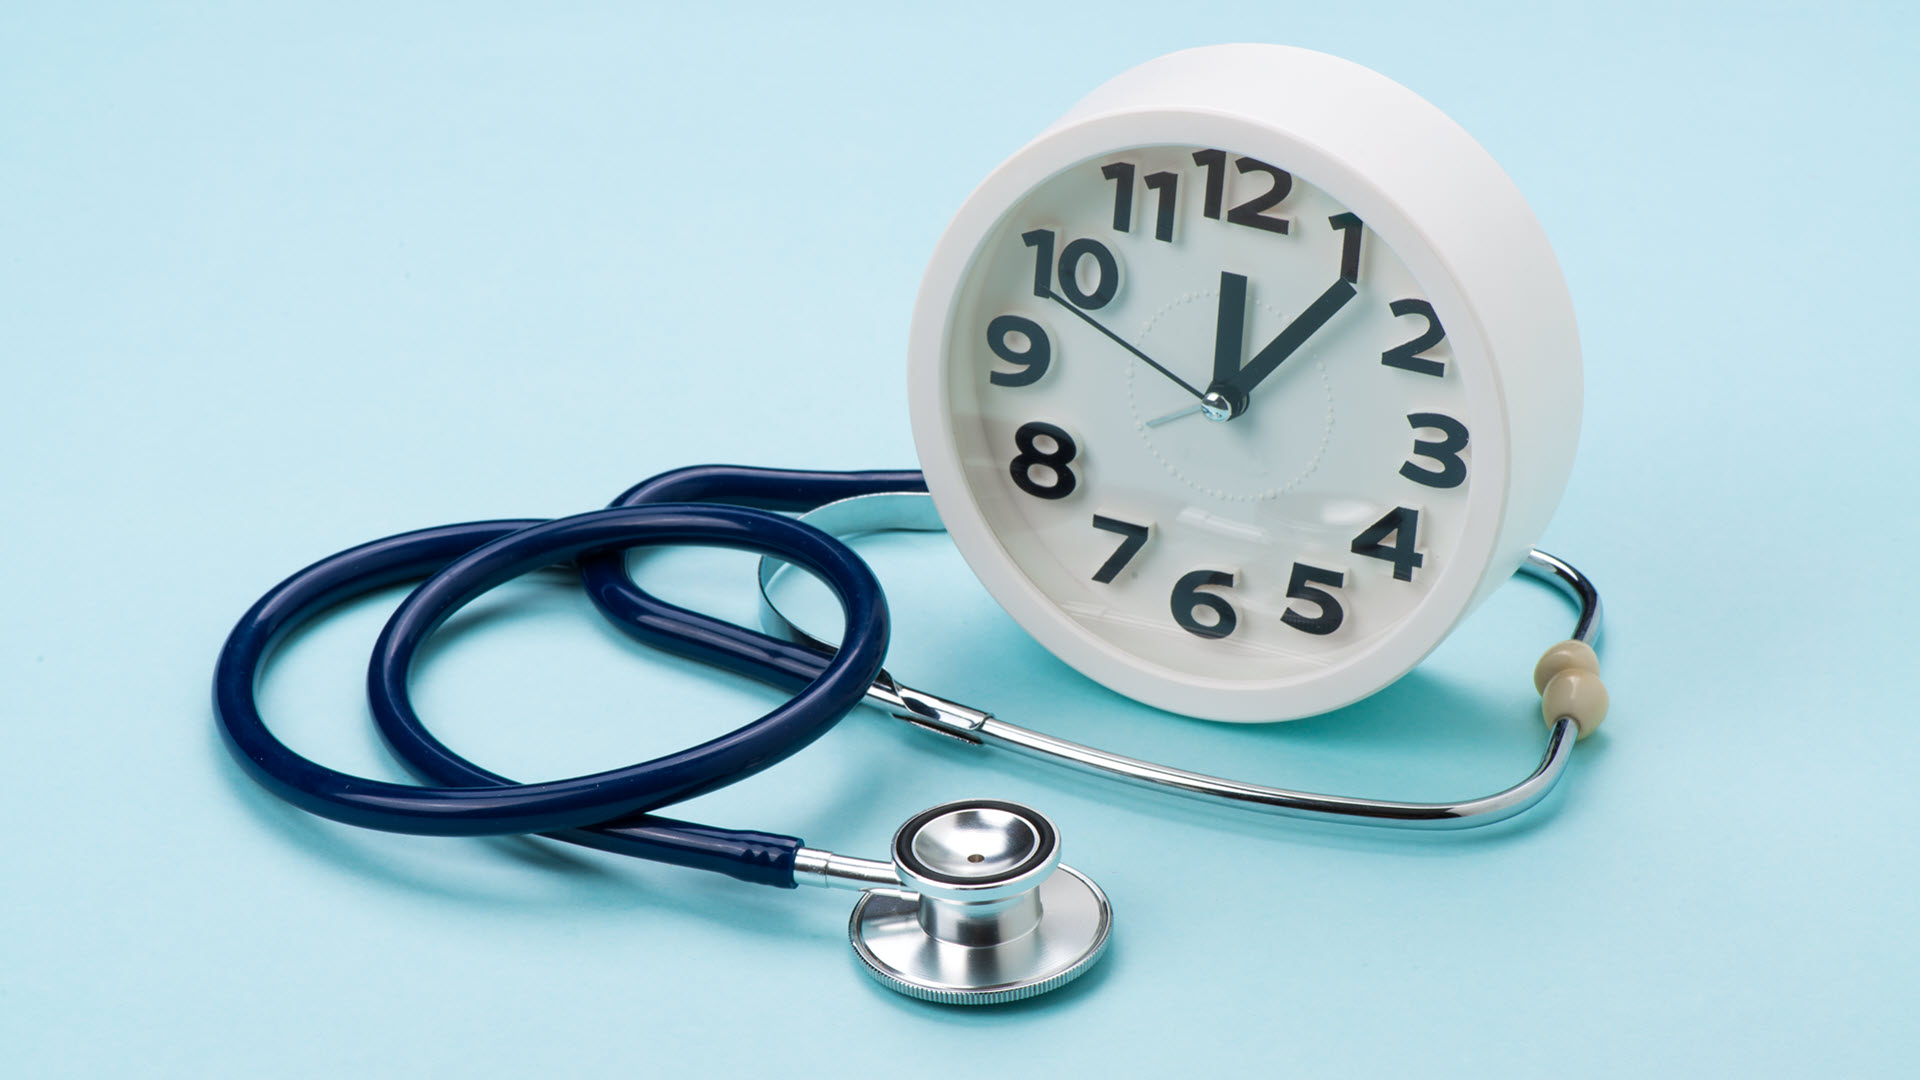 Clock and a stethoscope